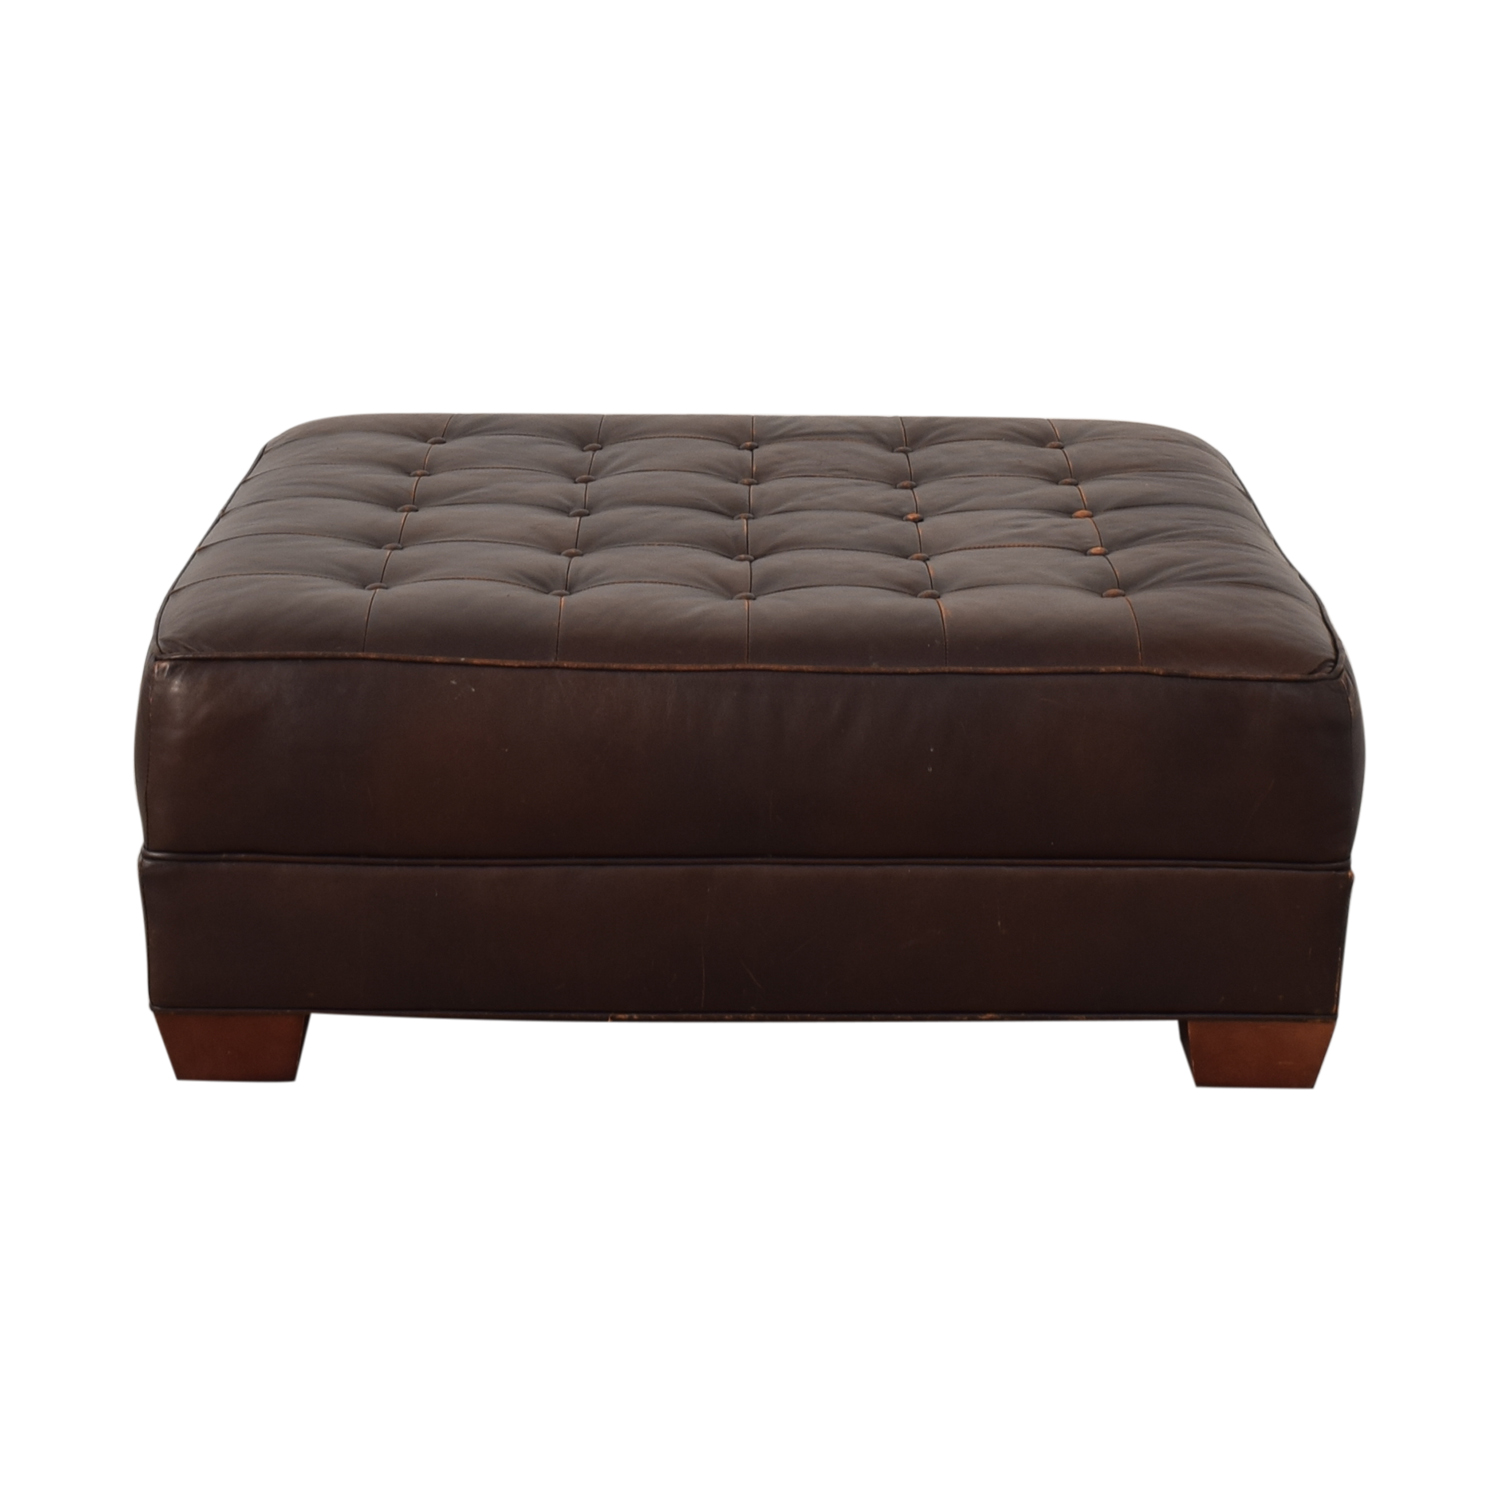 buy Crate & Barrel Crate & Barrel Brown Tufted Ottoman online